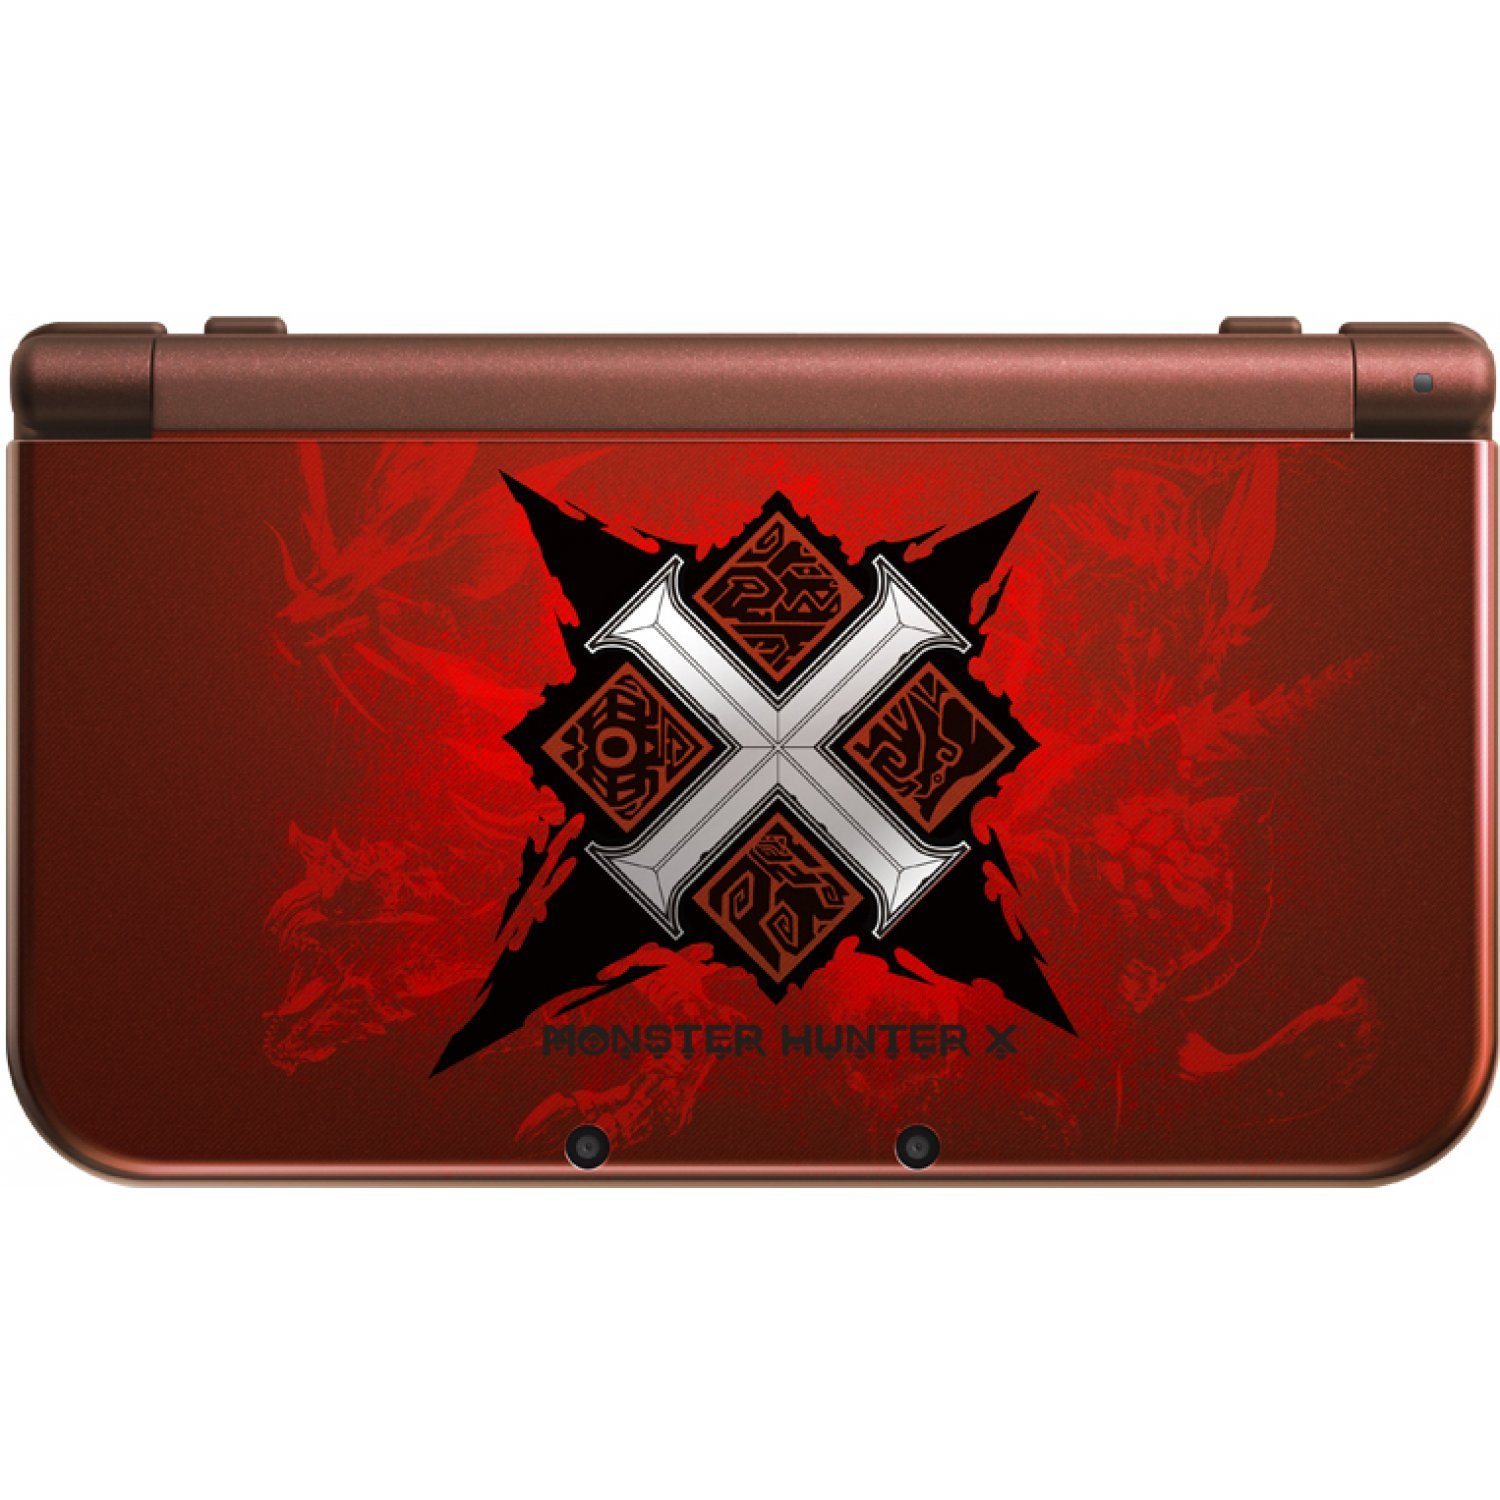 Nouvelle 3DS XL Edition Monster Hunter  New-nintendo-3ds-ll-monster-hunter-cross-special-pack-420461.16